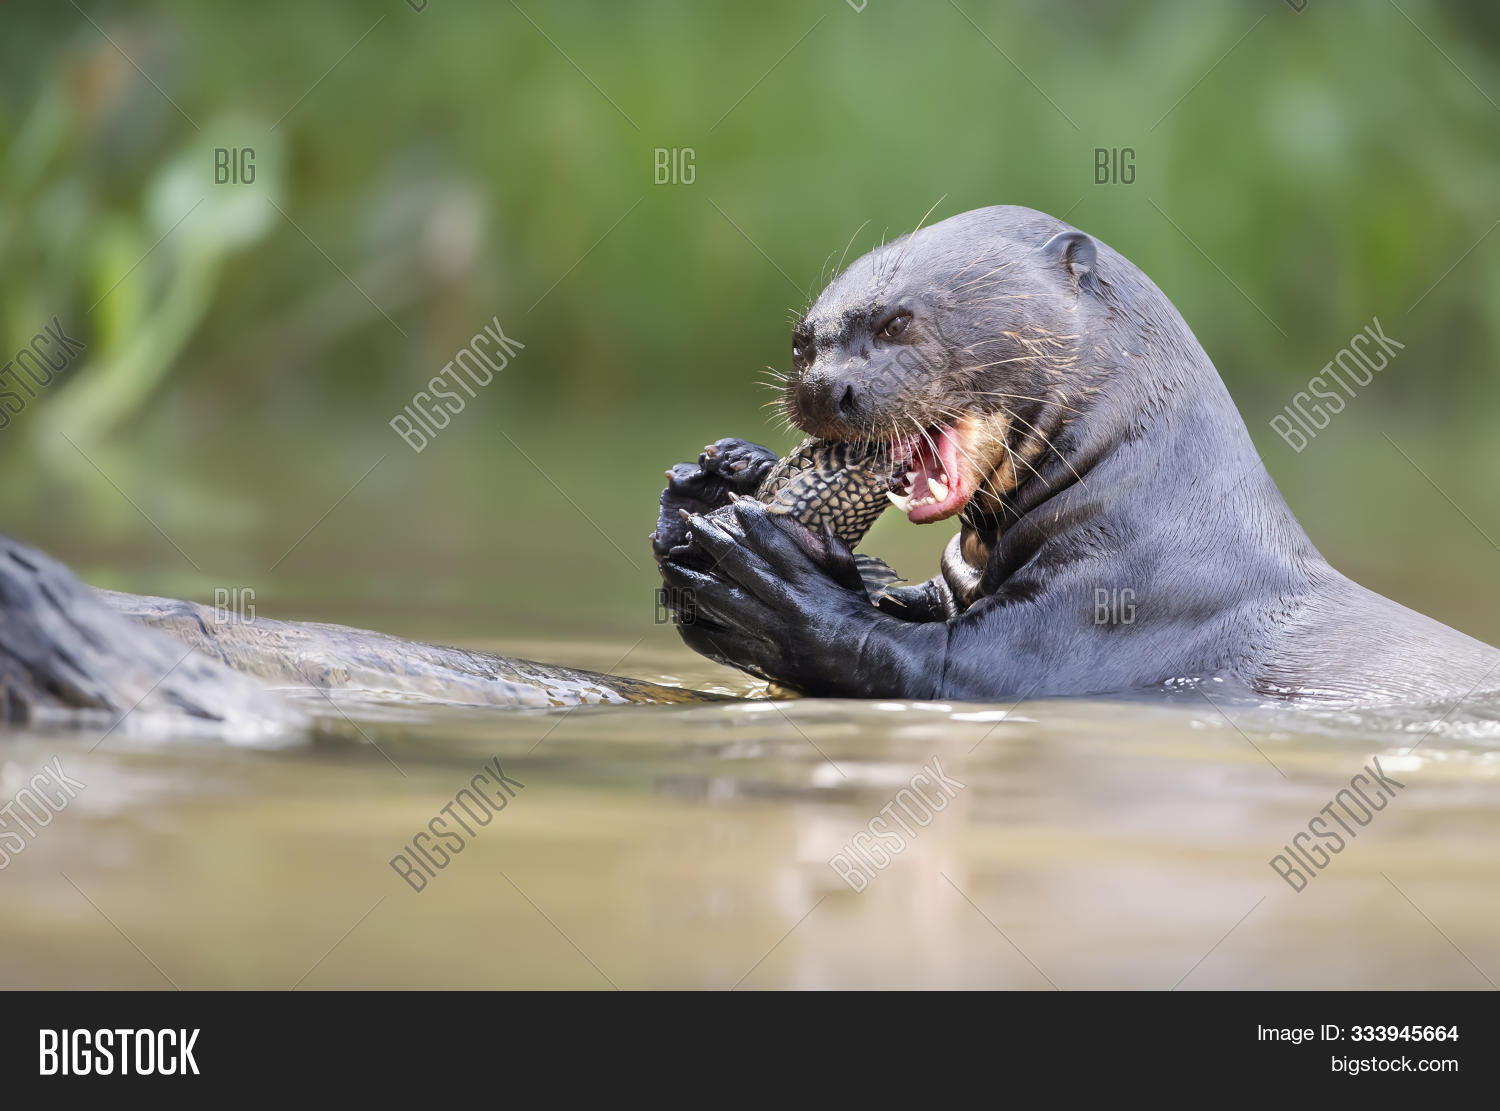 America,Brazil,Cuiaba,Grosso,Jofre,Mato,Pantanal,Porto,Pteronura,South,amazon,animal,bank,behavior,behaviour,big,brasiliensis,brazilian,cat,catfish,close,close-up,closeup,eat,eating,endangered,feeding,fish,fishing,giant,habitat,head,headshot,isolated,large,mammal,natural,nature,otter,portrait,river,riverbank,up,water,wild,wildlife